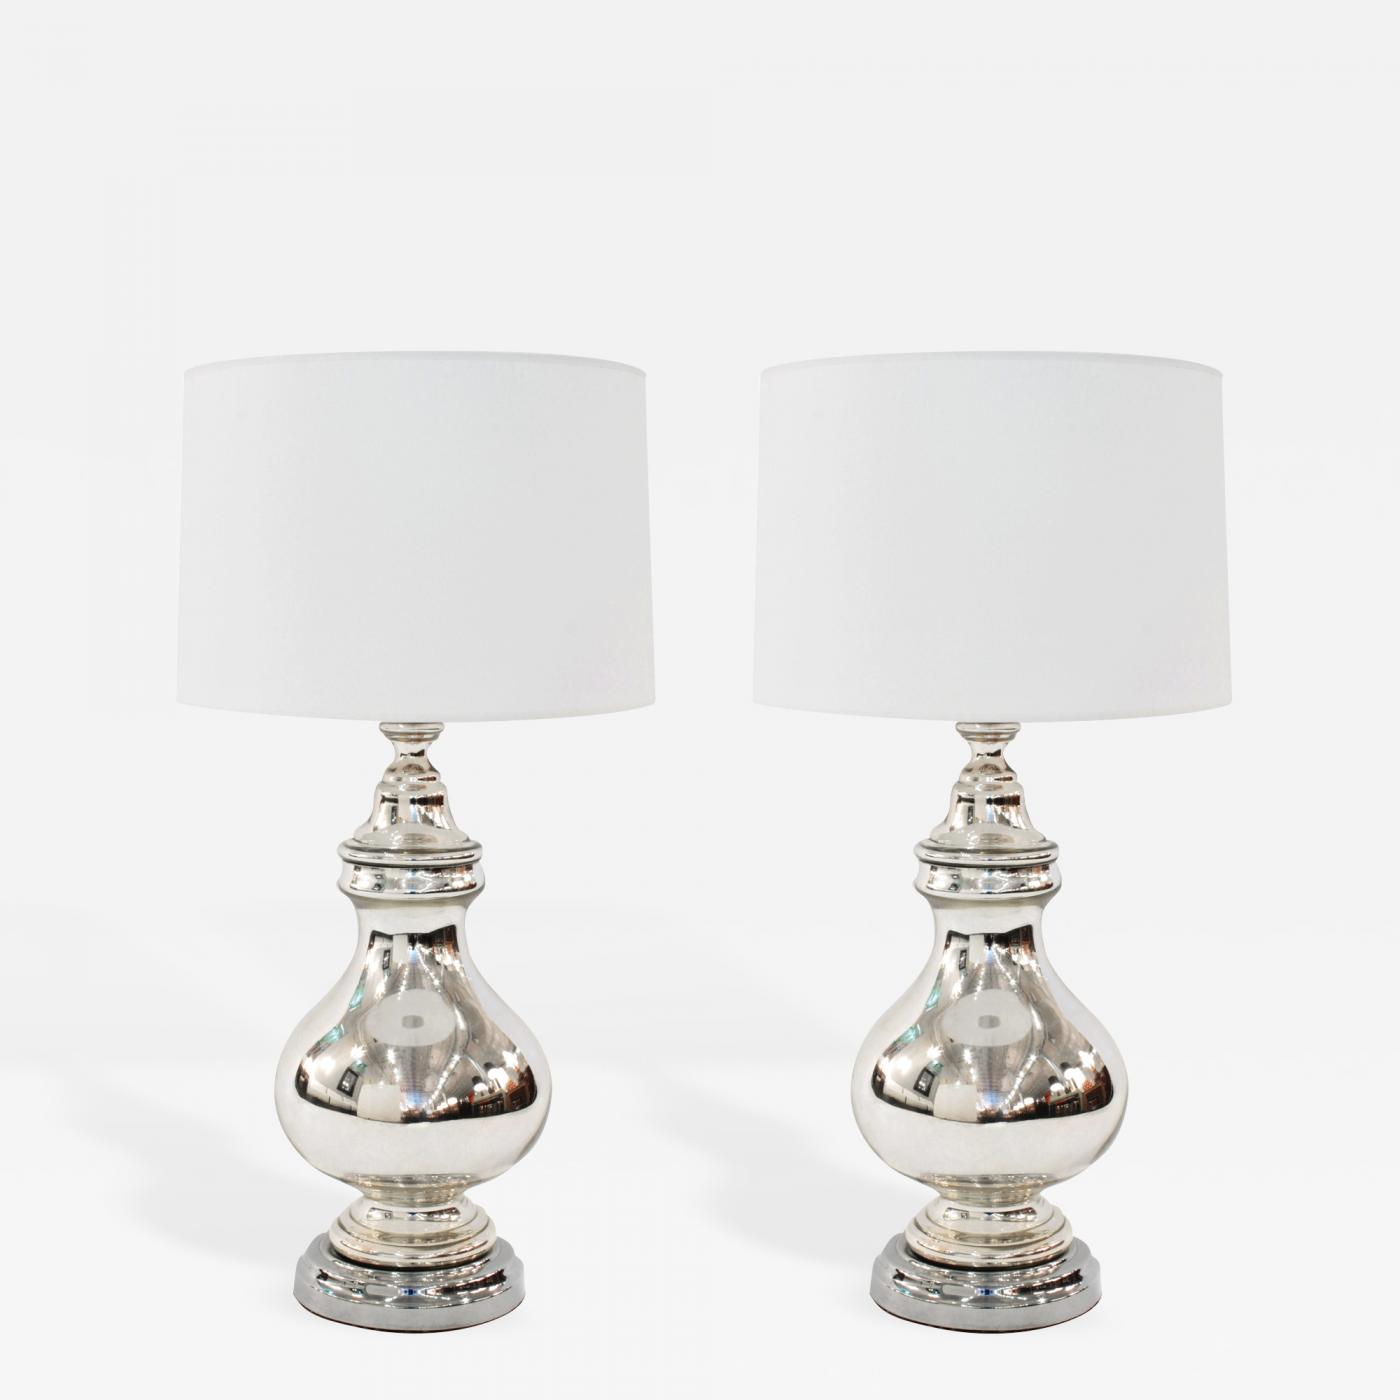 Image of: Pair Of Large Mercury Glass Tear Drop Lamps